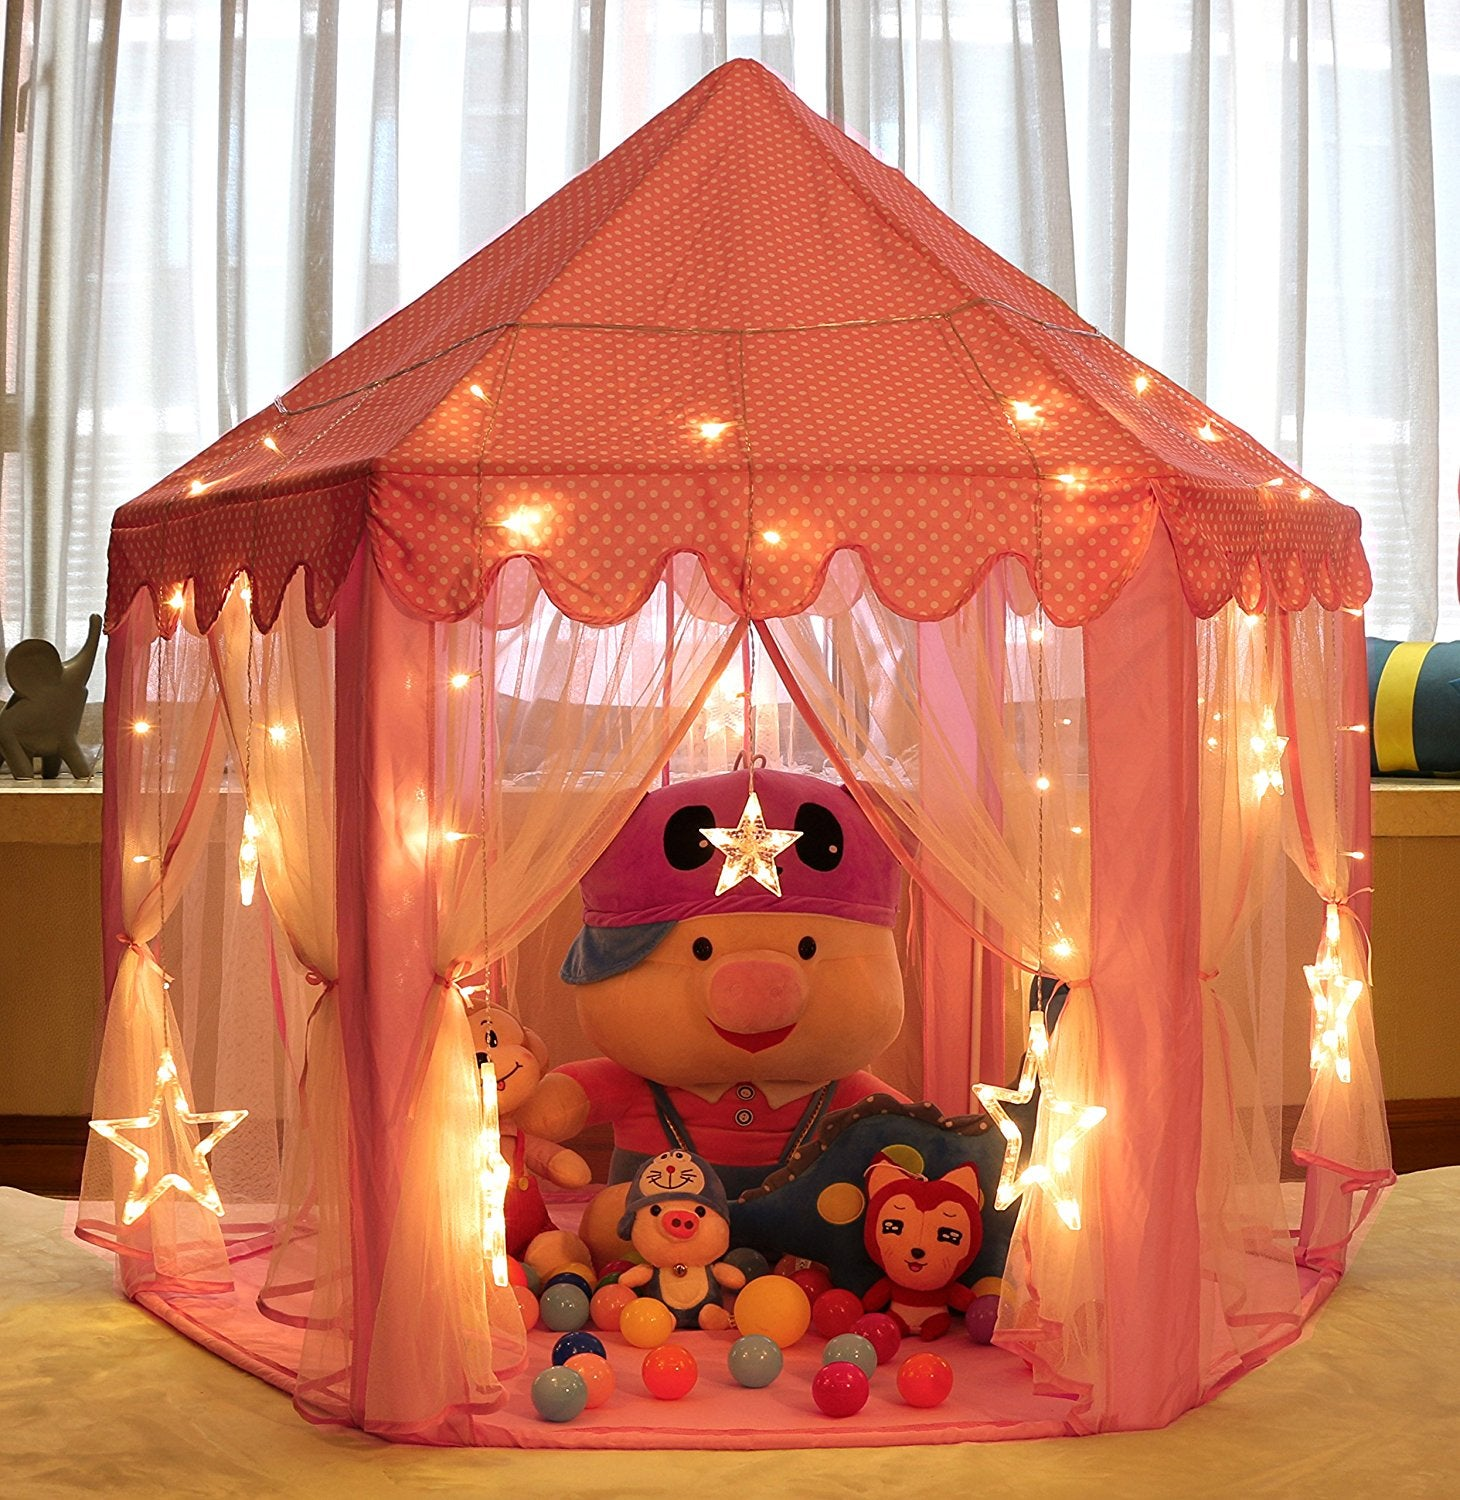 Kids Princess Castle Play TentGirls Indoor Playhouse with Small Led Star Lights55u0027u0027x 53u0027u0027(DxH)Ballsu0026Blanket Not Included & Kids Princess Castle Play TentGirls Indoor Playhouse u2013 VicPow